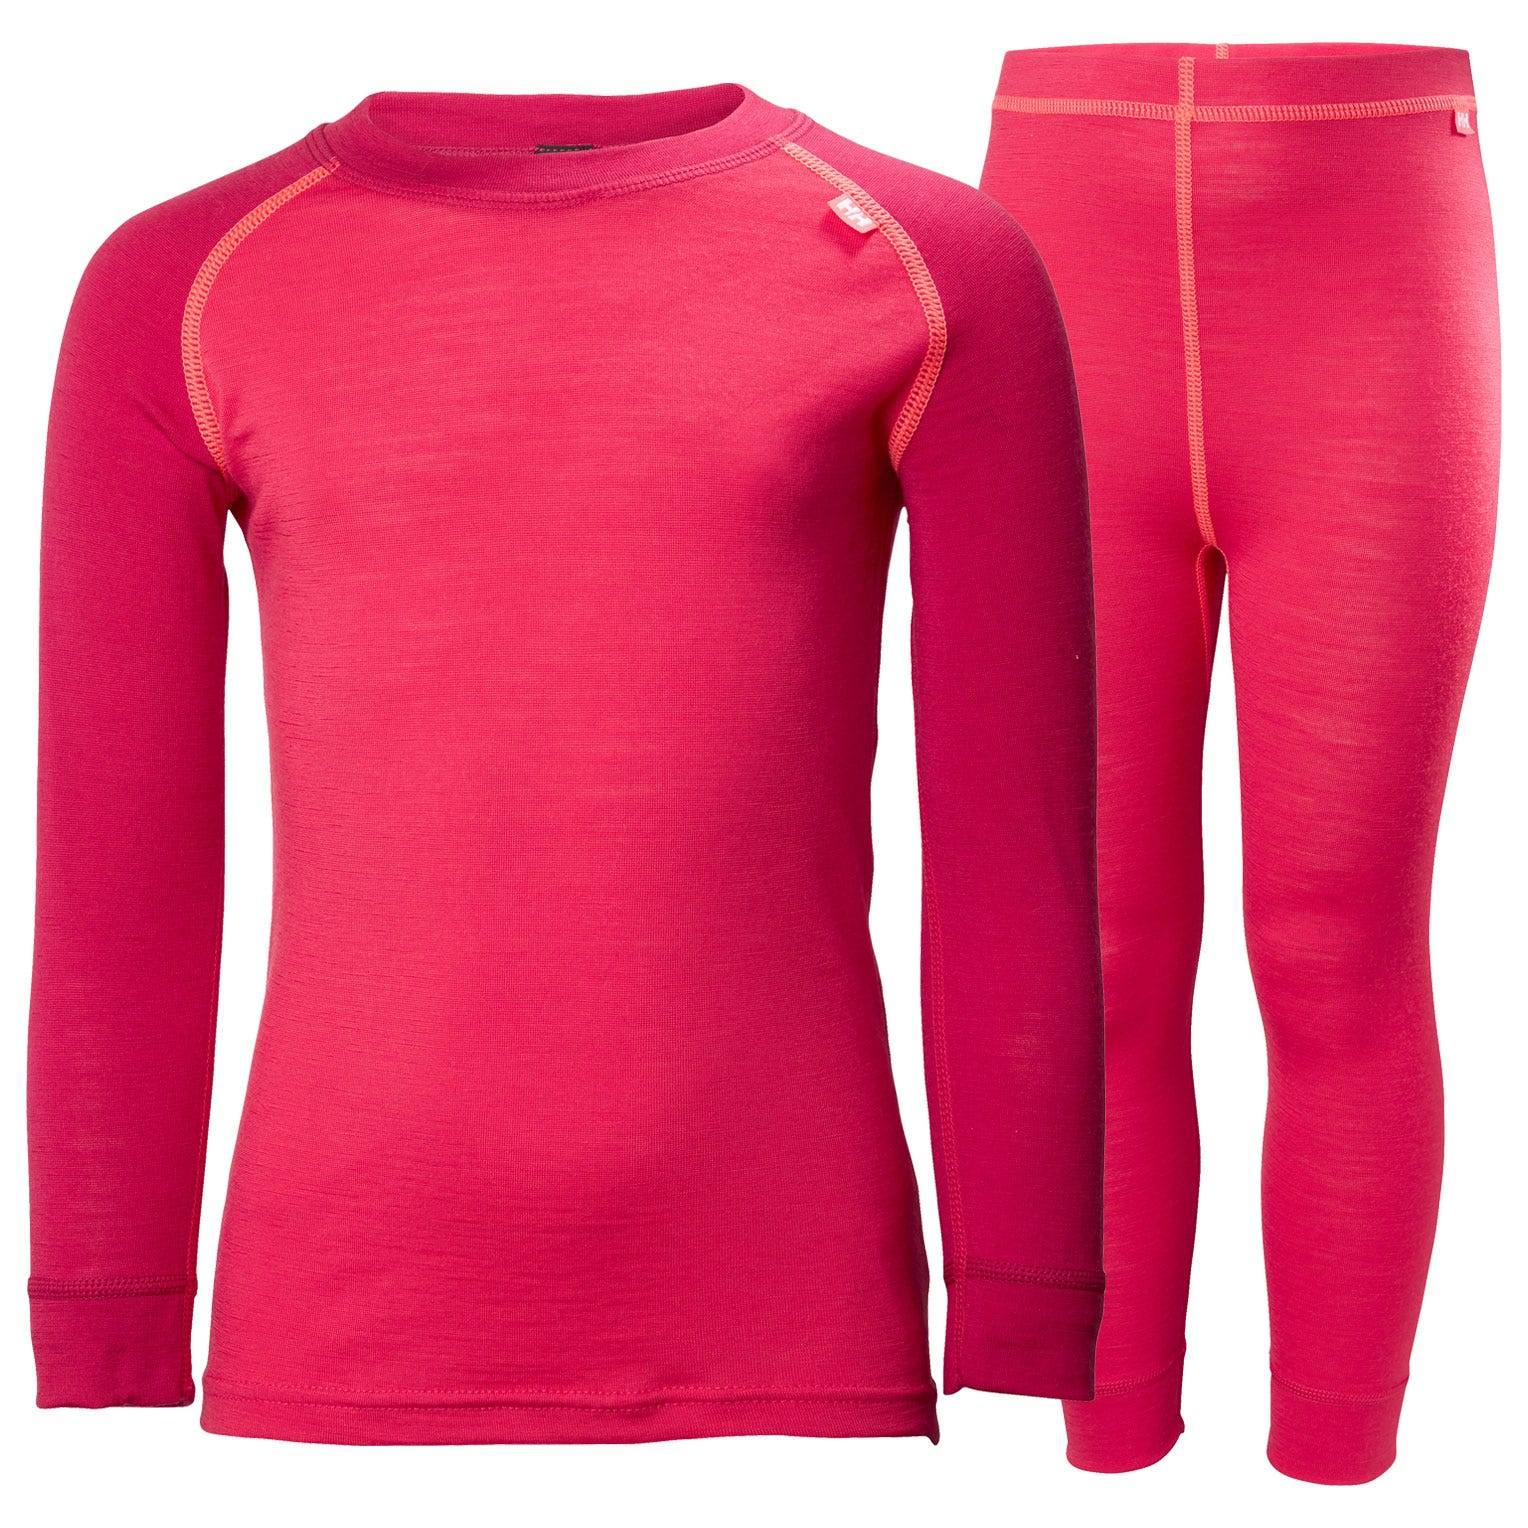 Helly Hansen Kids Merino Mid Set Baselayer Pink 104/4